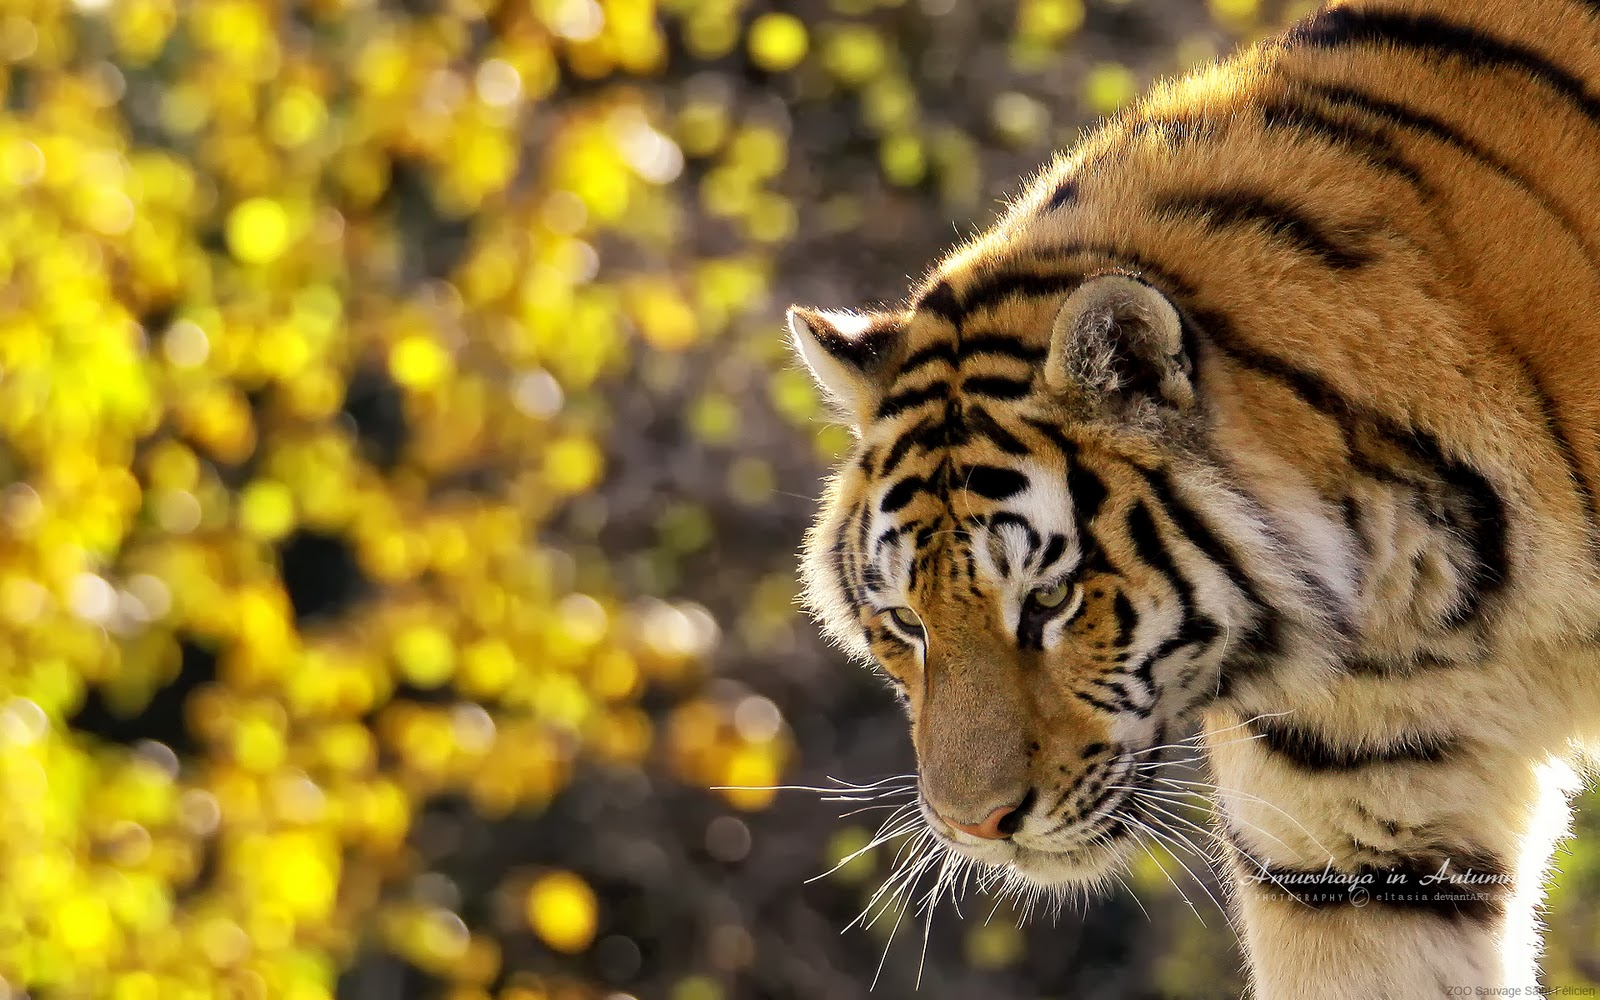 Cute Animated Wallpapers Hd Husn Ke Nazare Tigers Wallpapers